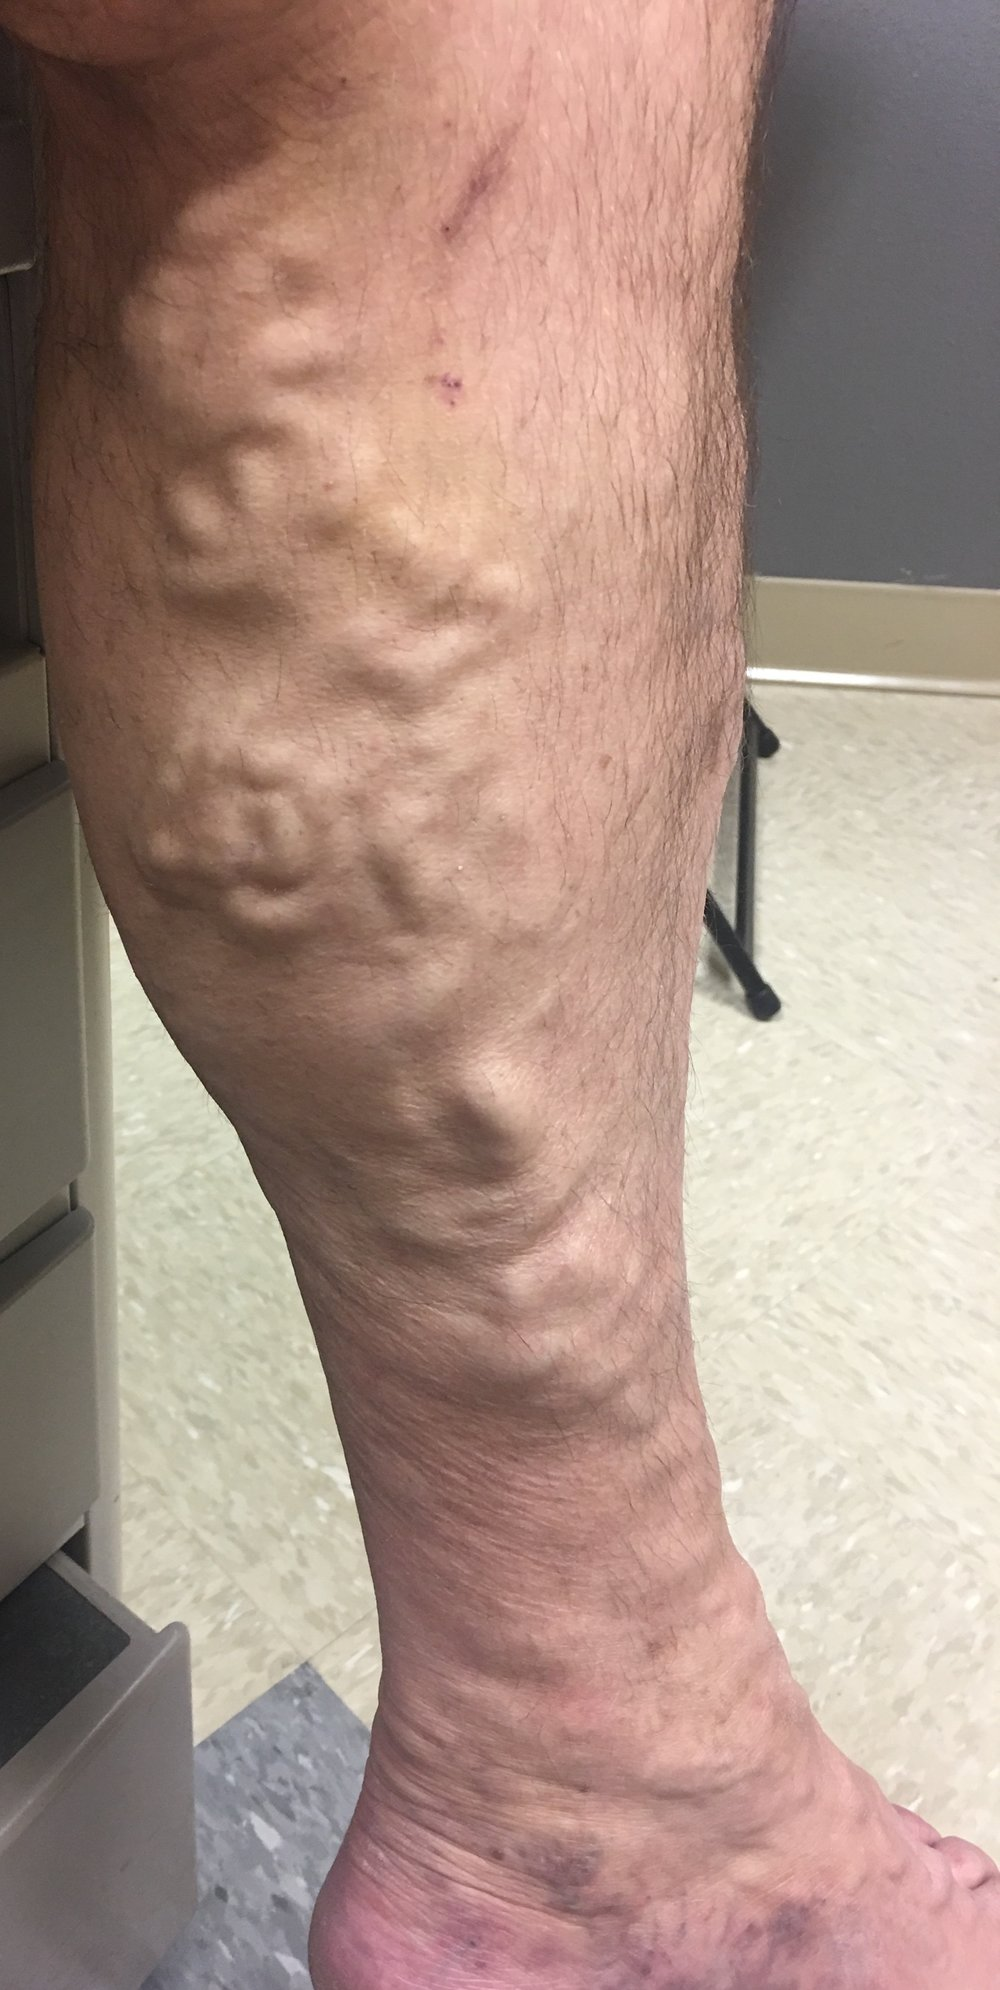 Varicose veins can be not only cosmetically unappealing but also painful and are usually caused from chronic venous insufficiency. They are treated in the office with either laser, foam, or removal. The treatment is painless. The large varicose veins do place you at risk for a deep vein thrombosis (DVT).